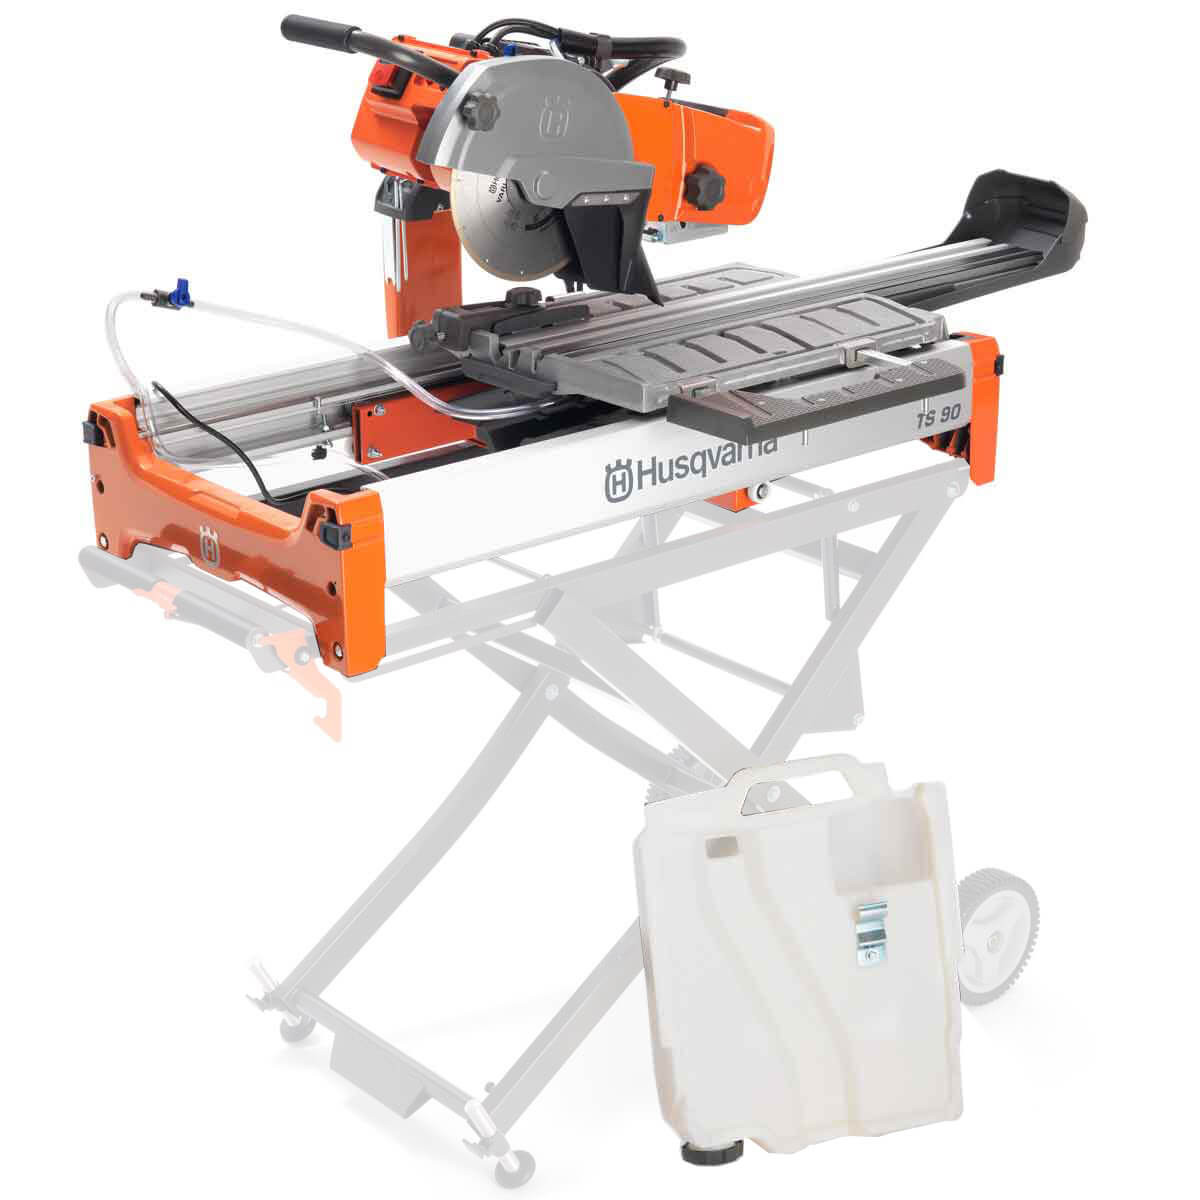 Husqvarna TS 90 Wet Tile Saw with wet cutting kit